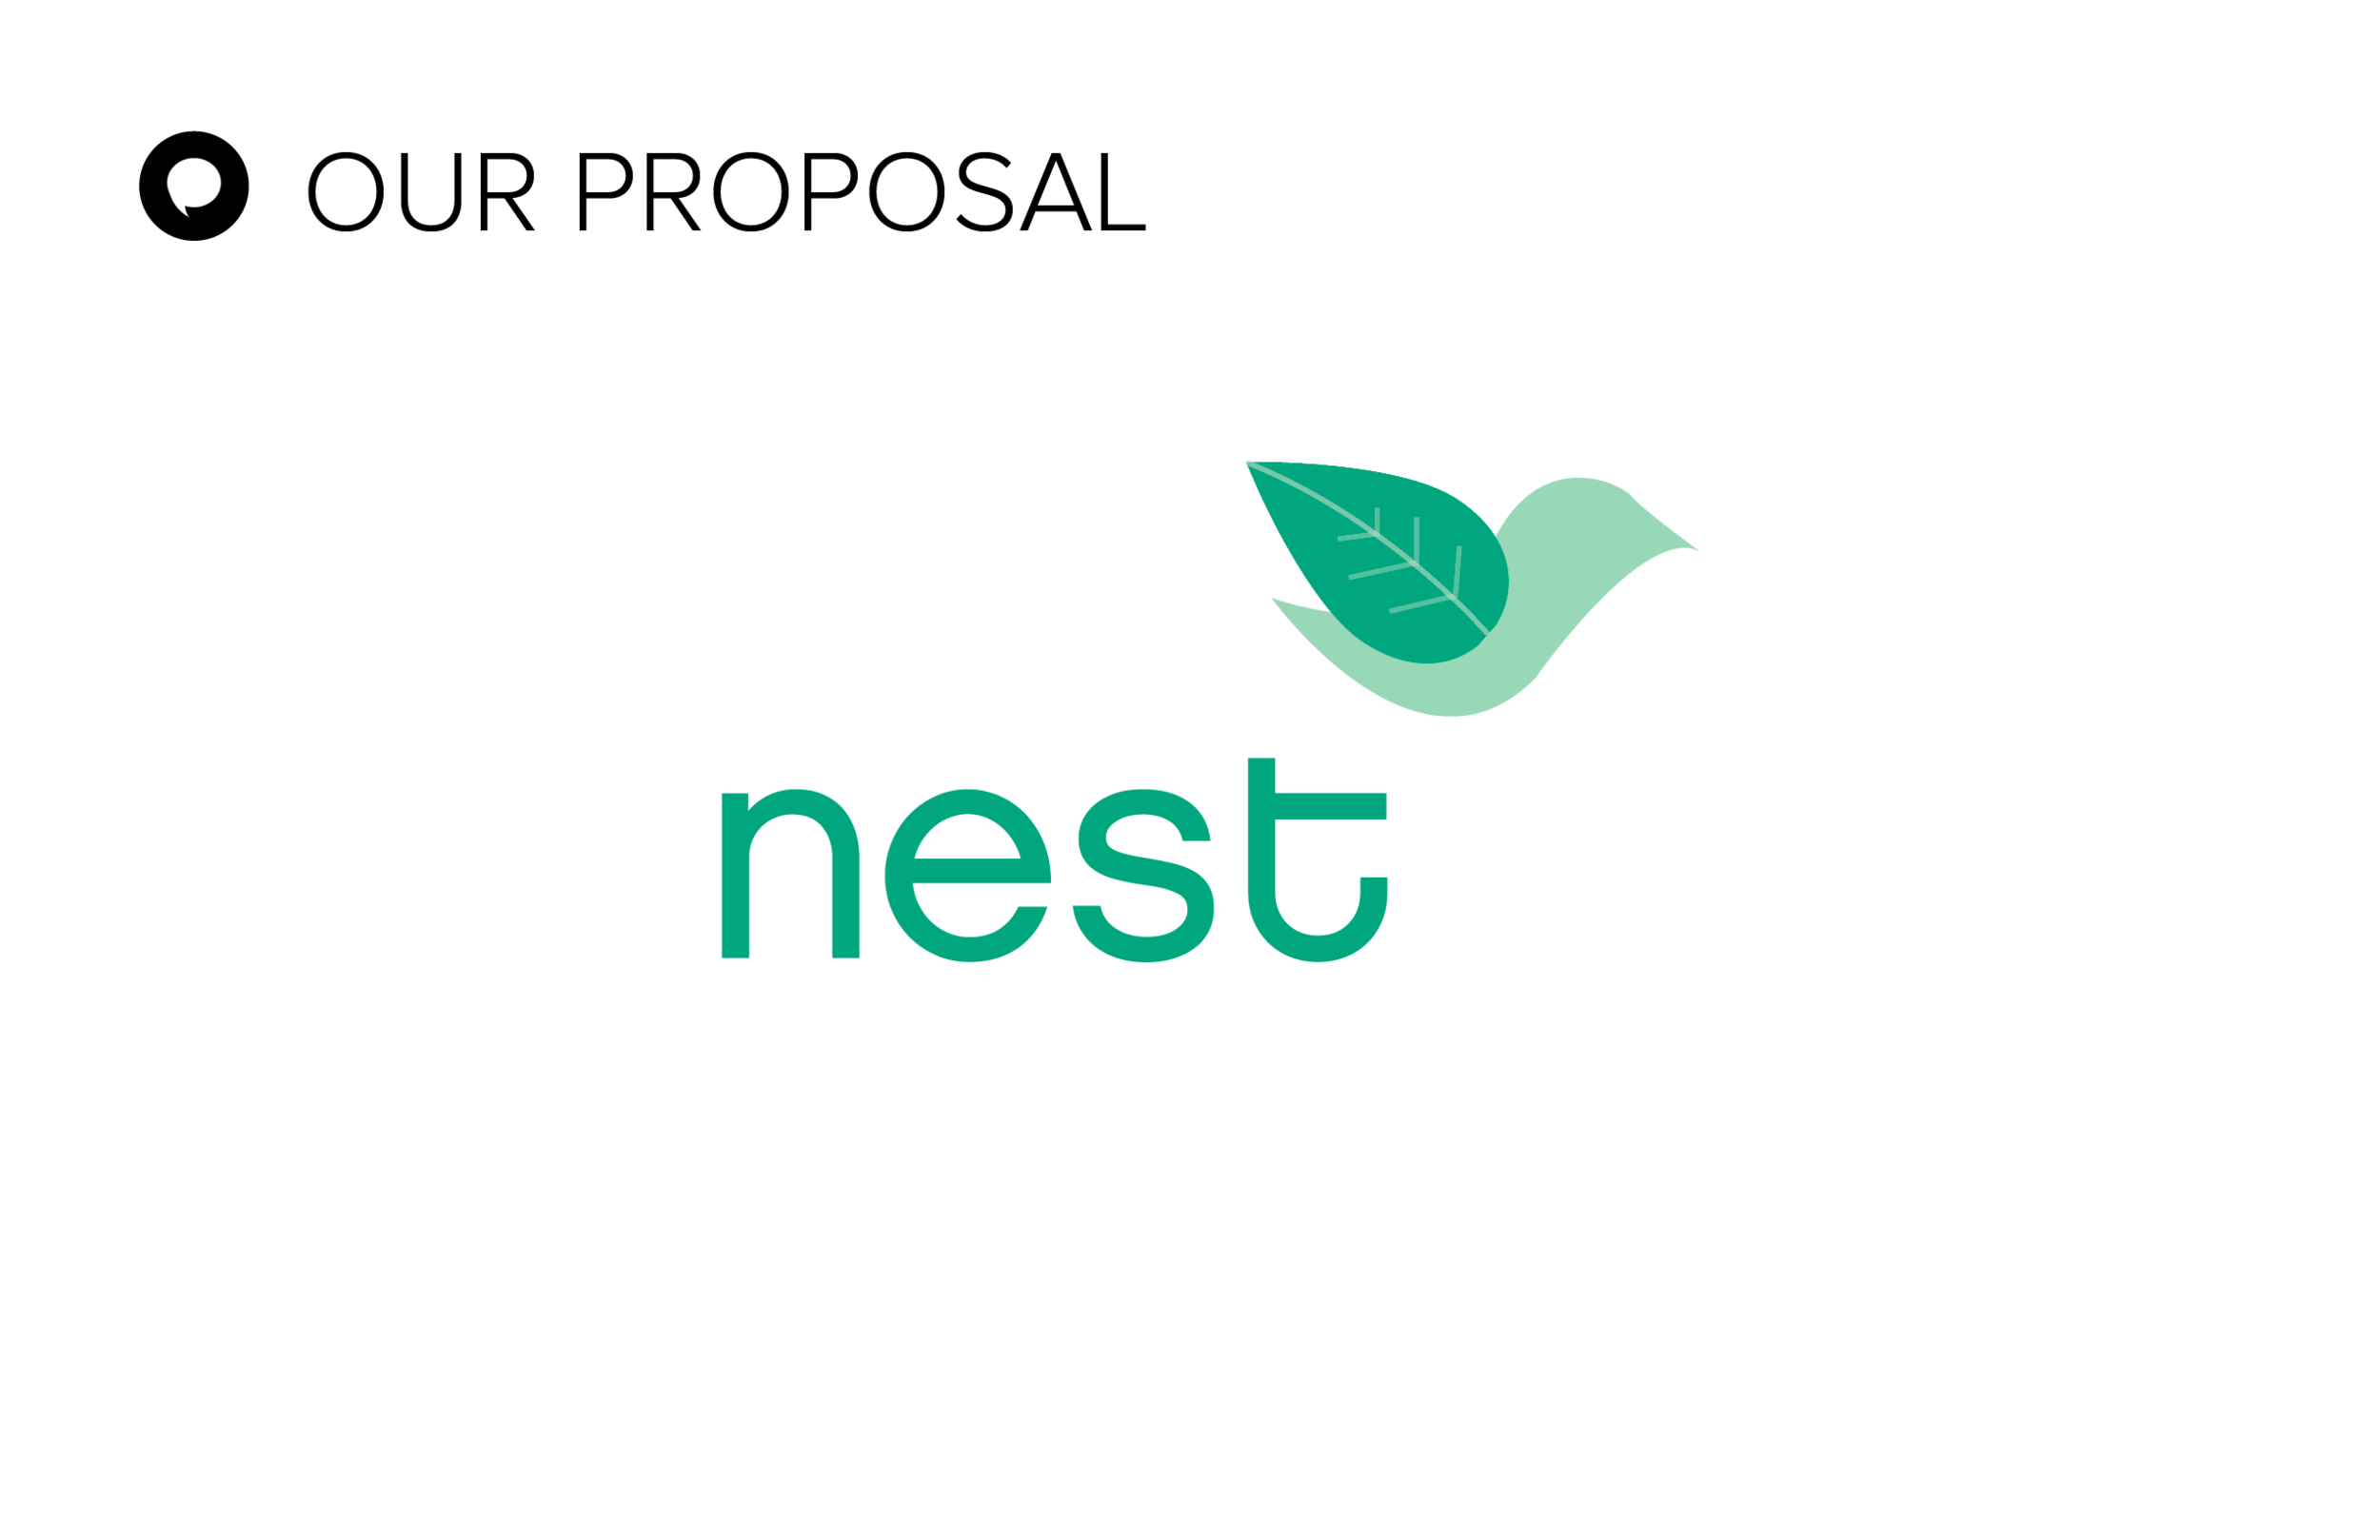 Nest Final Presentation5.png